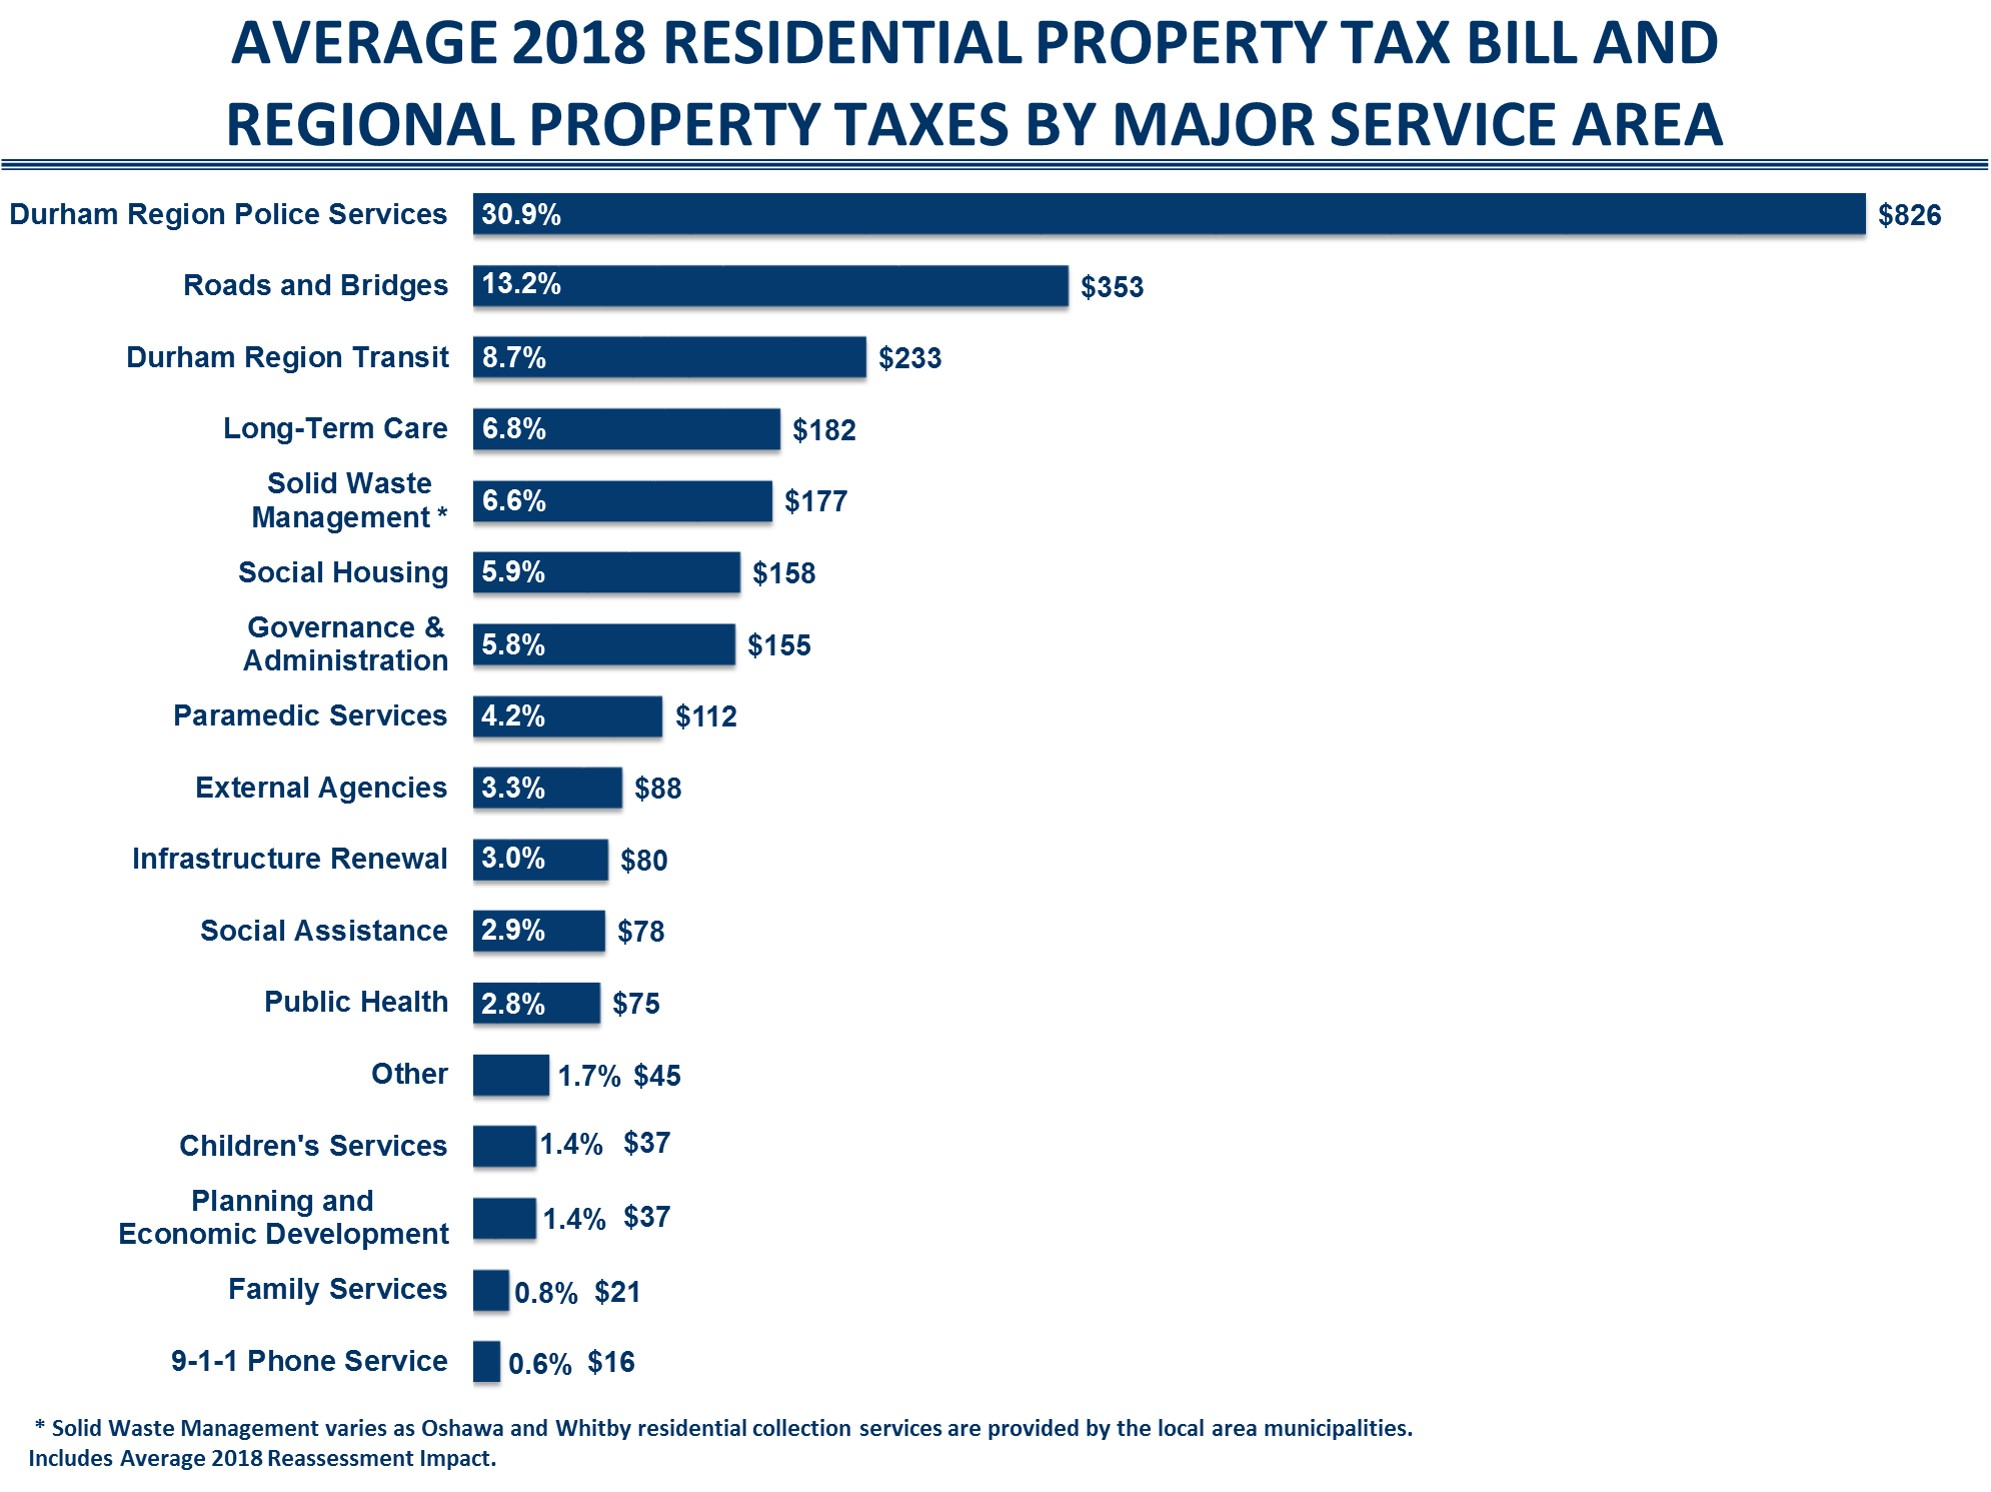 graph detailing average residential property tax bill and regional property taxes by major service area